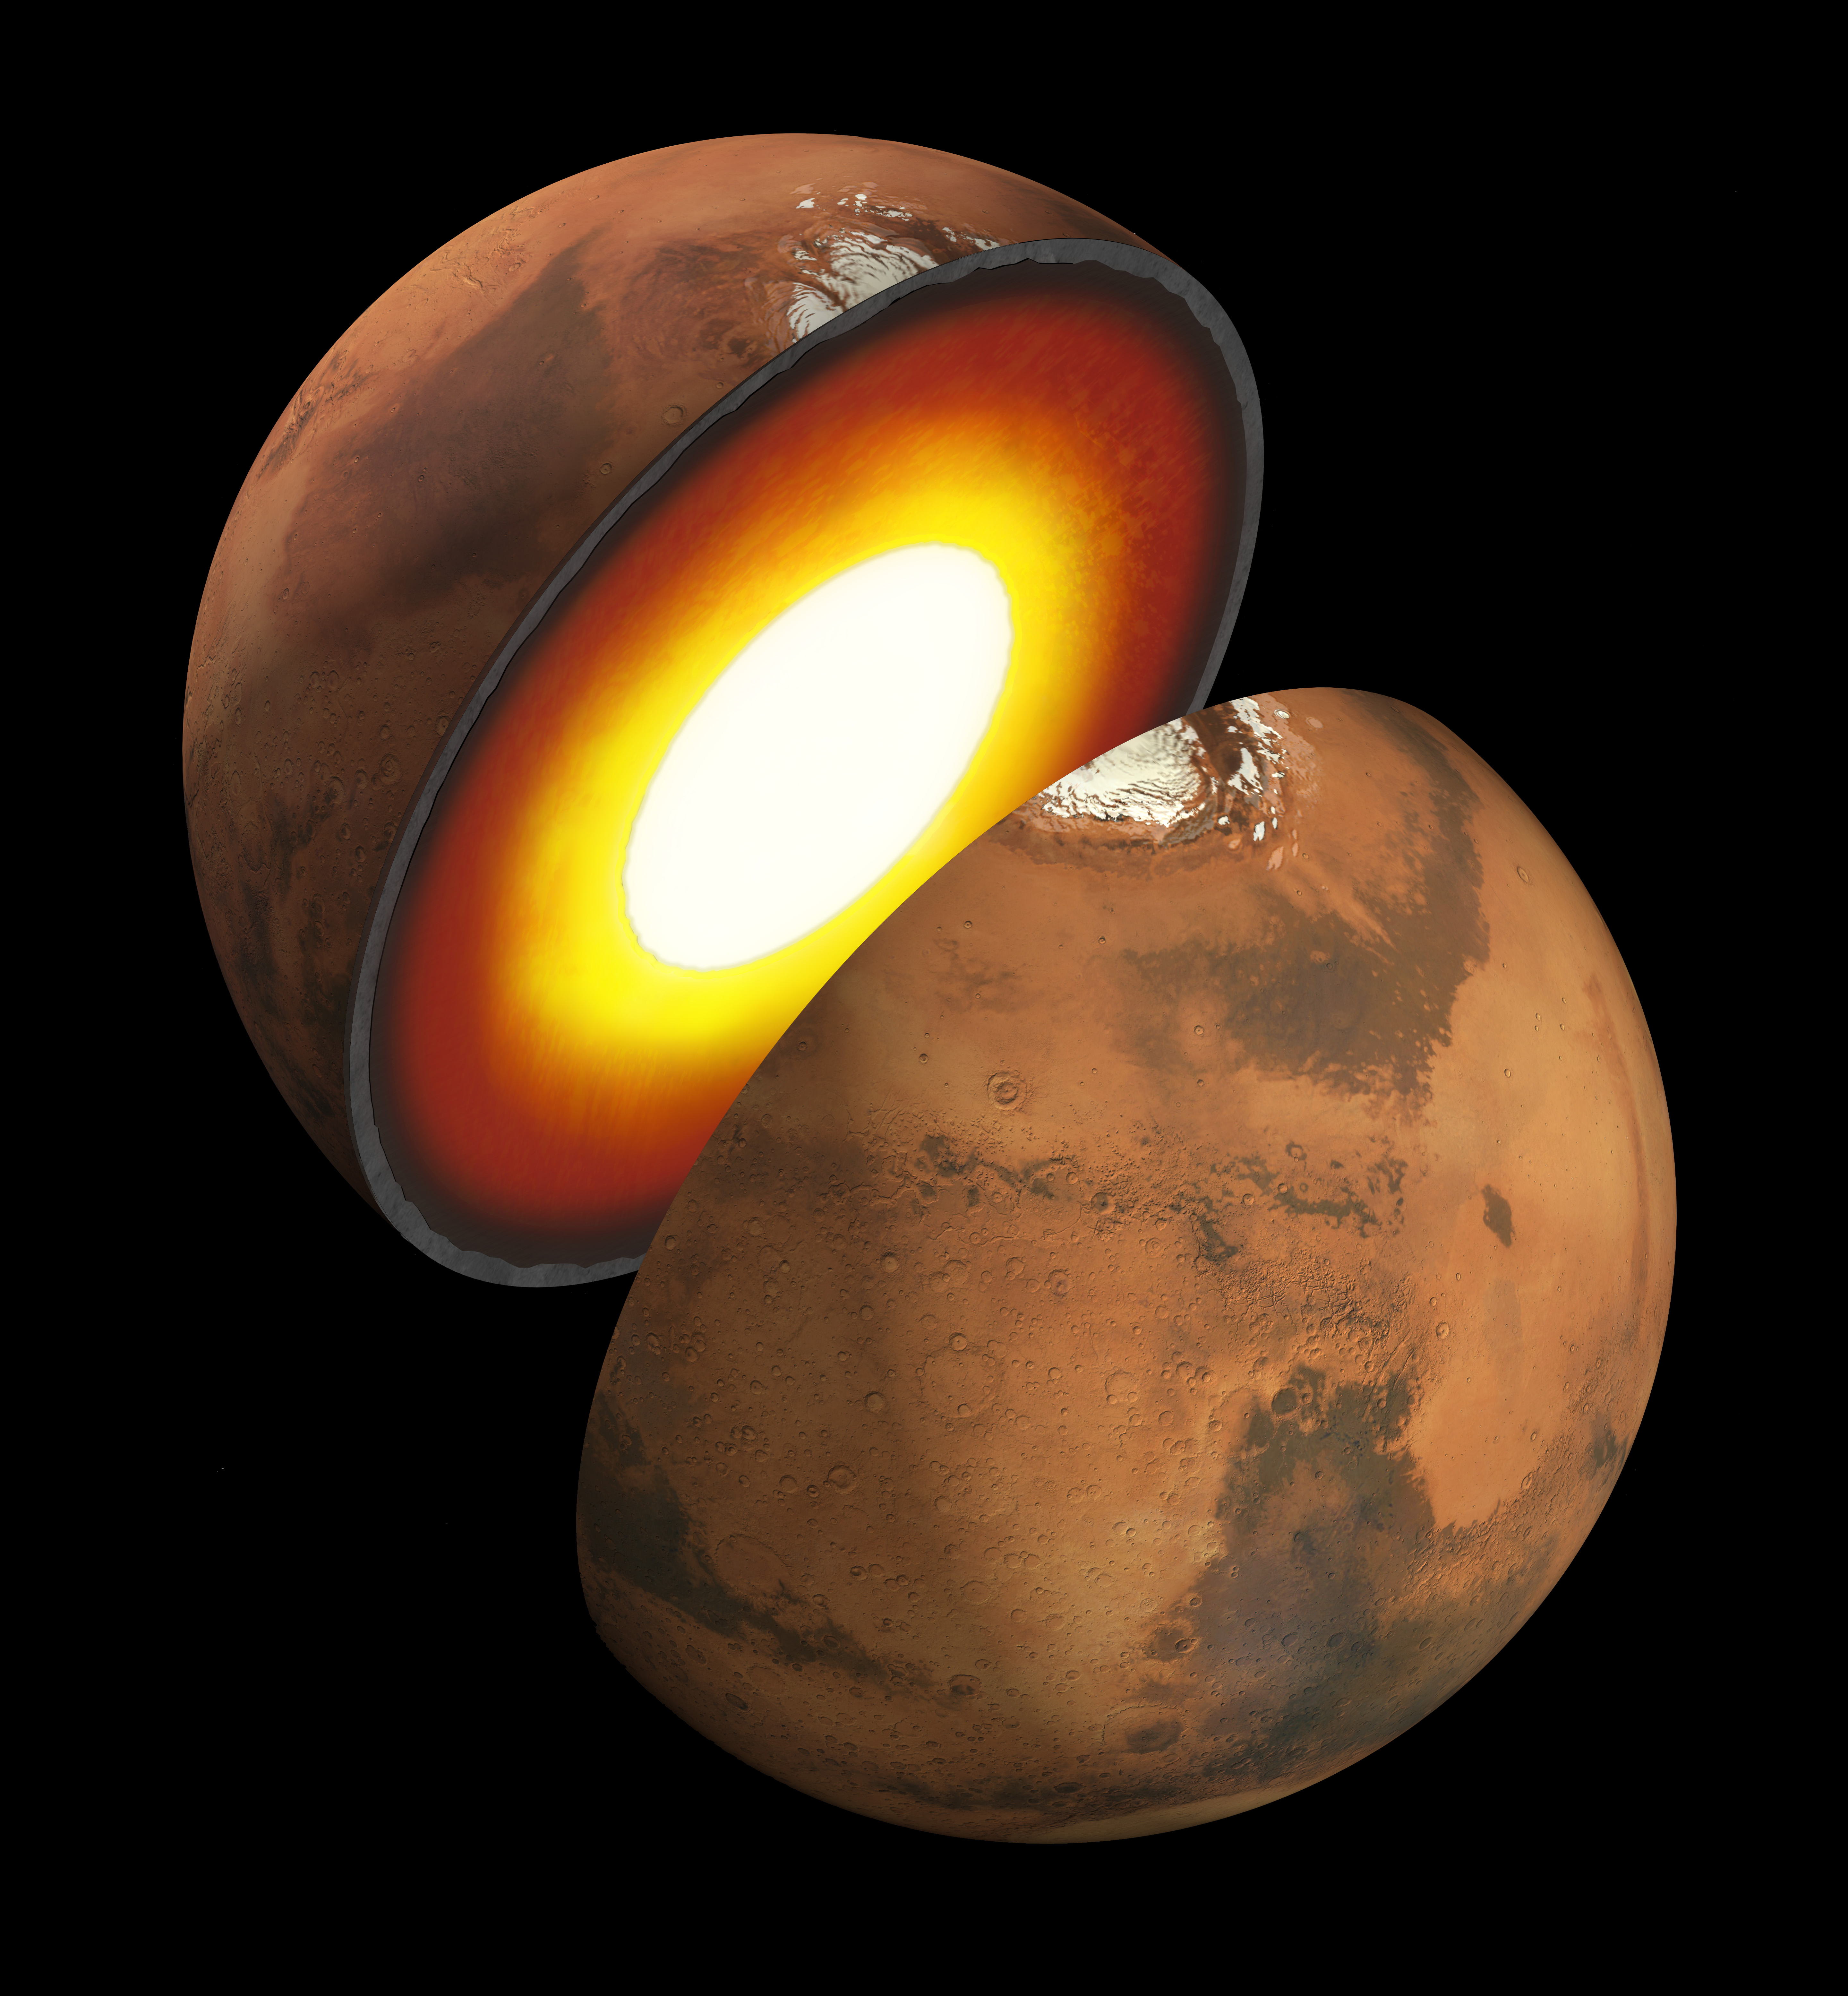 Mars Once Had Way More Oxygen in Its Atmosphere Than We